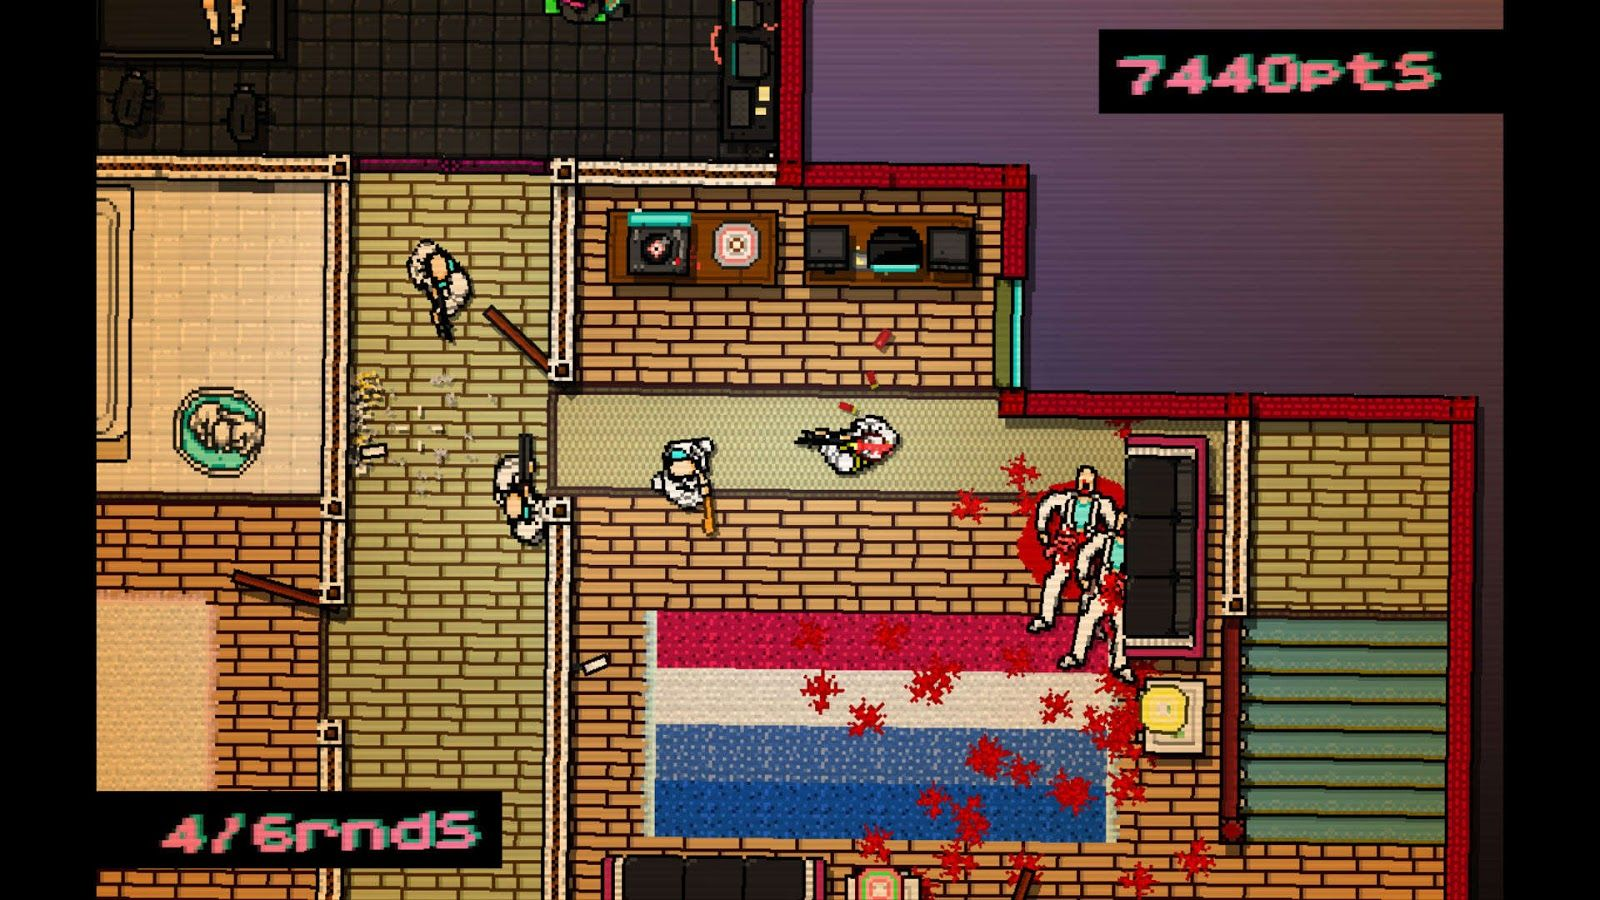 Hotline Miami Indie Games Games The Incredibles